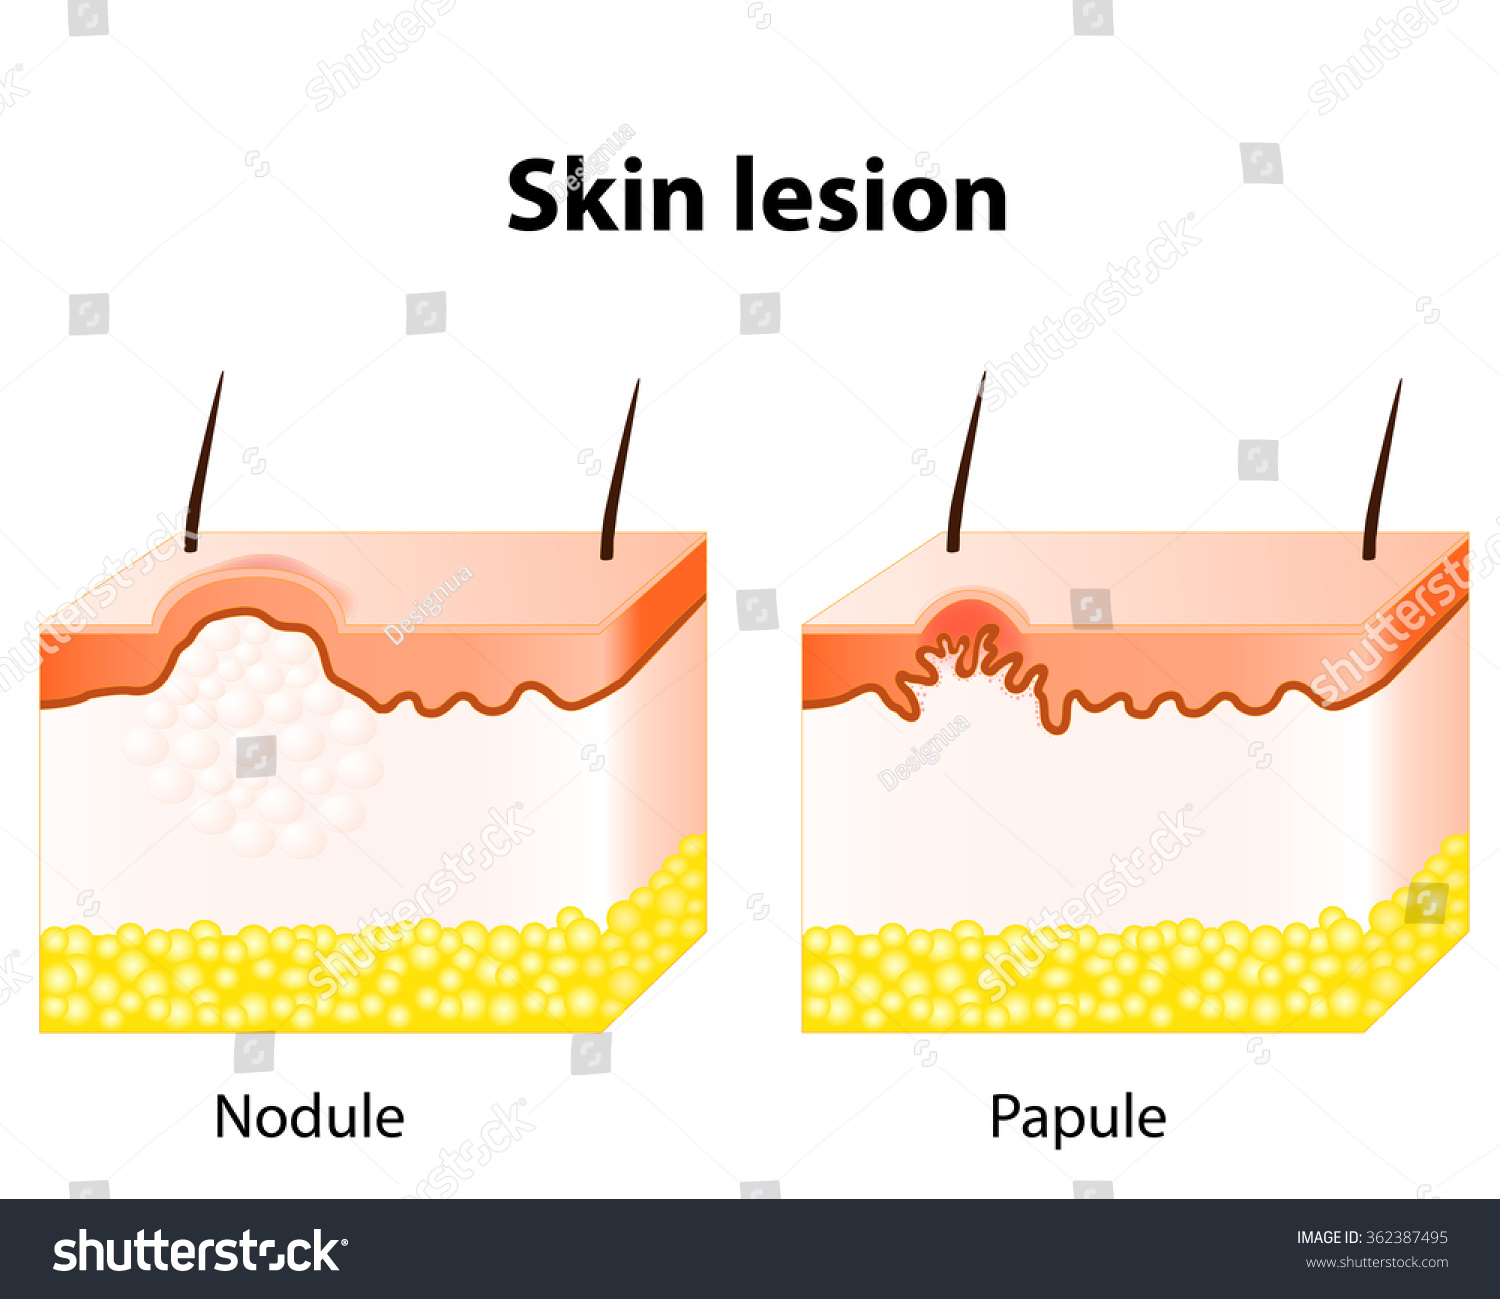 diagram of papules skin lesion papule solid elevation skin stock vector ... #12